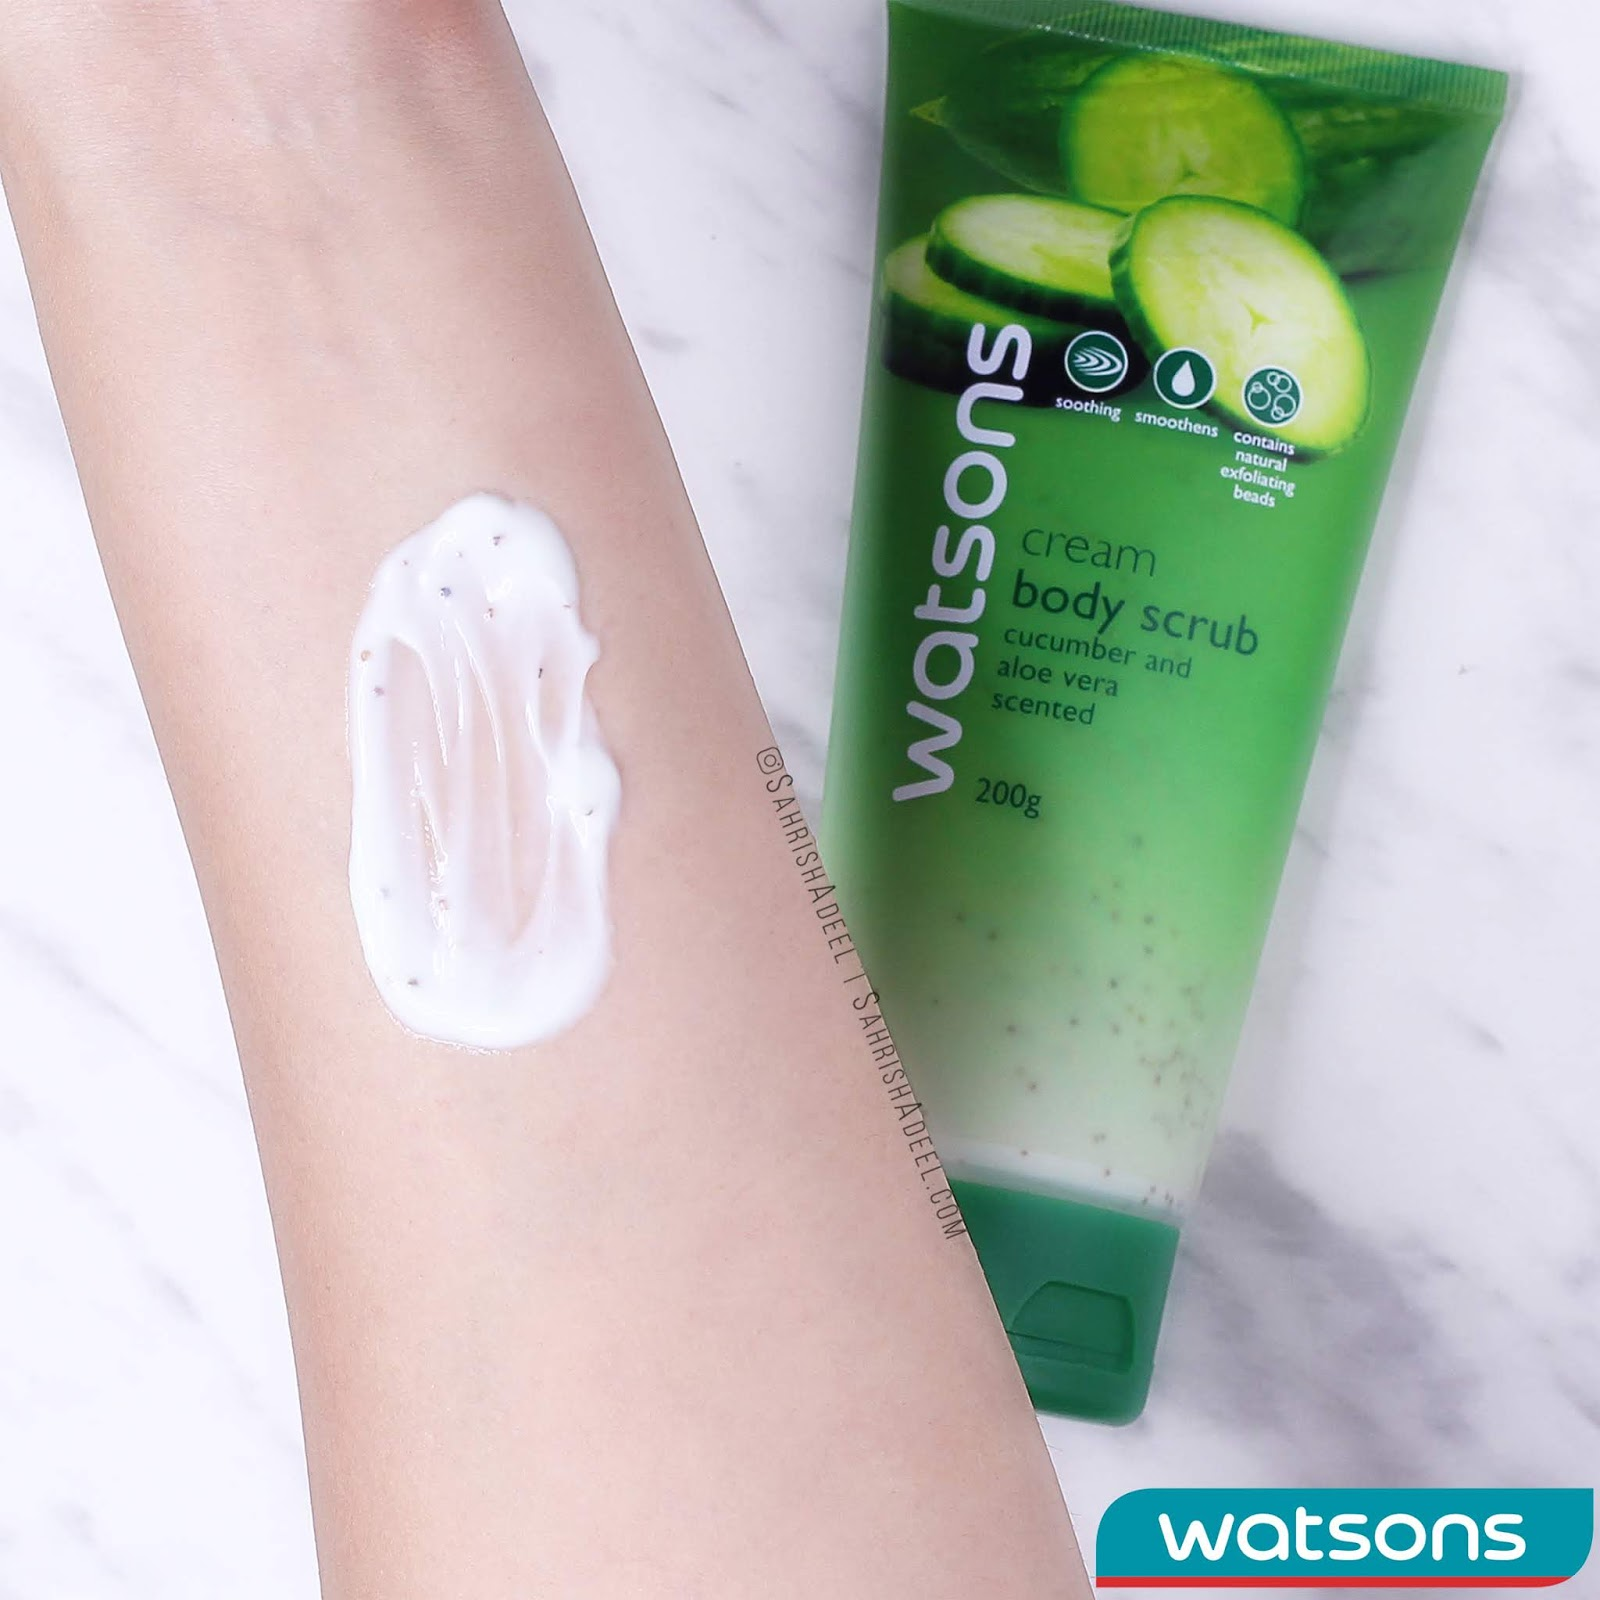 Watsons Gel Body Scrub Cucumber & Aloe Vera - Review